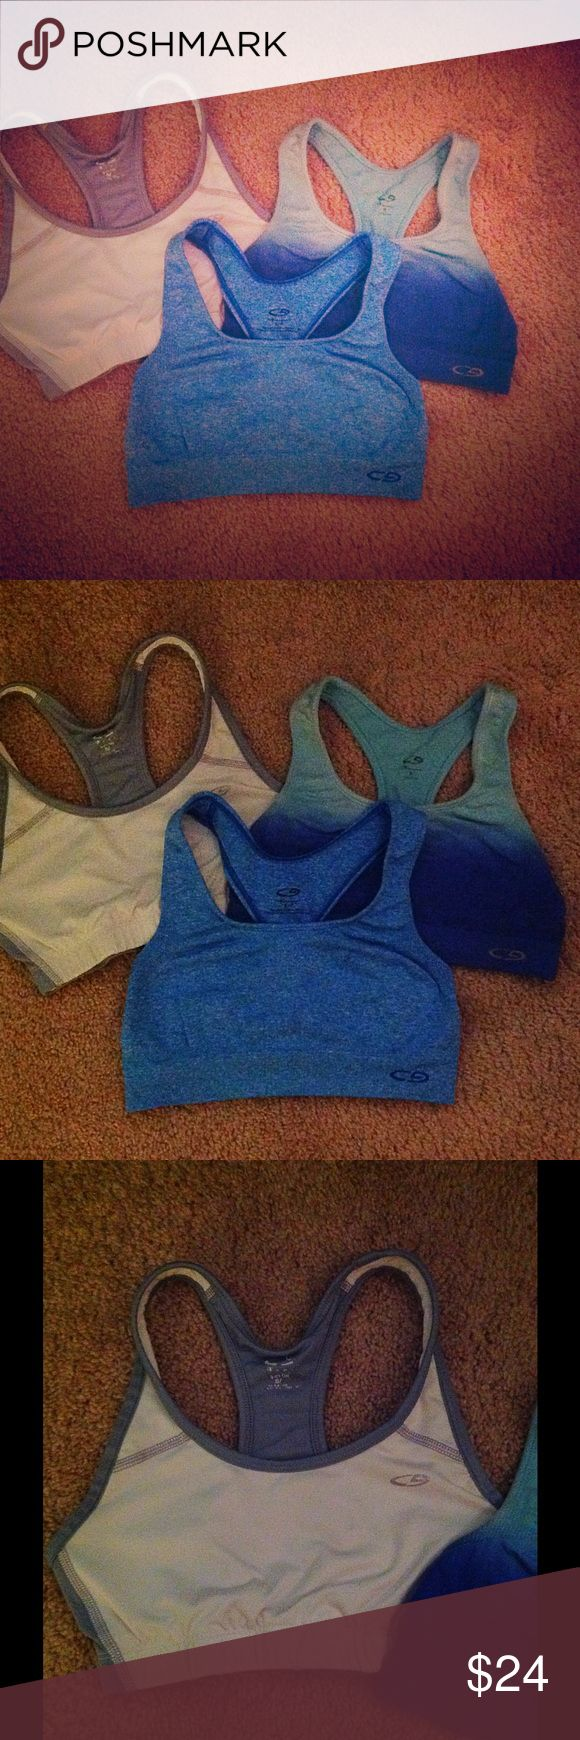 Sports bra bundle! Three Champion sports bras. White with gray border, solid blue and dark blue/light blue. All are size S with light wear. All stretchy! Willing to sell separately! Comment below Champion Intimates & Sleepwear Bras